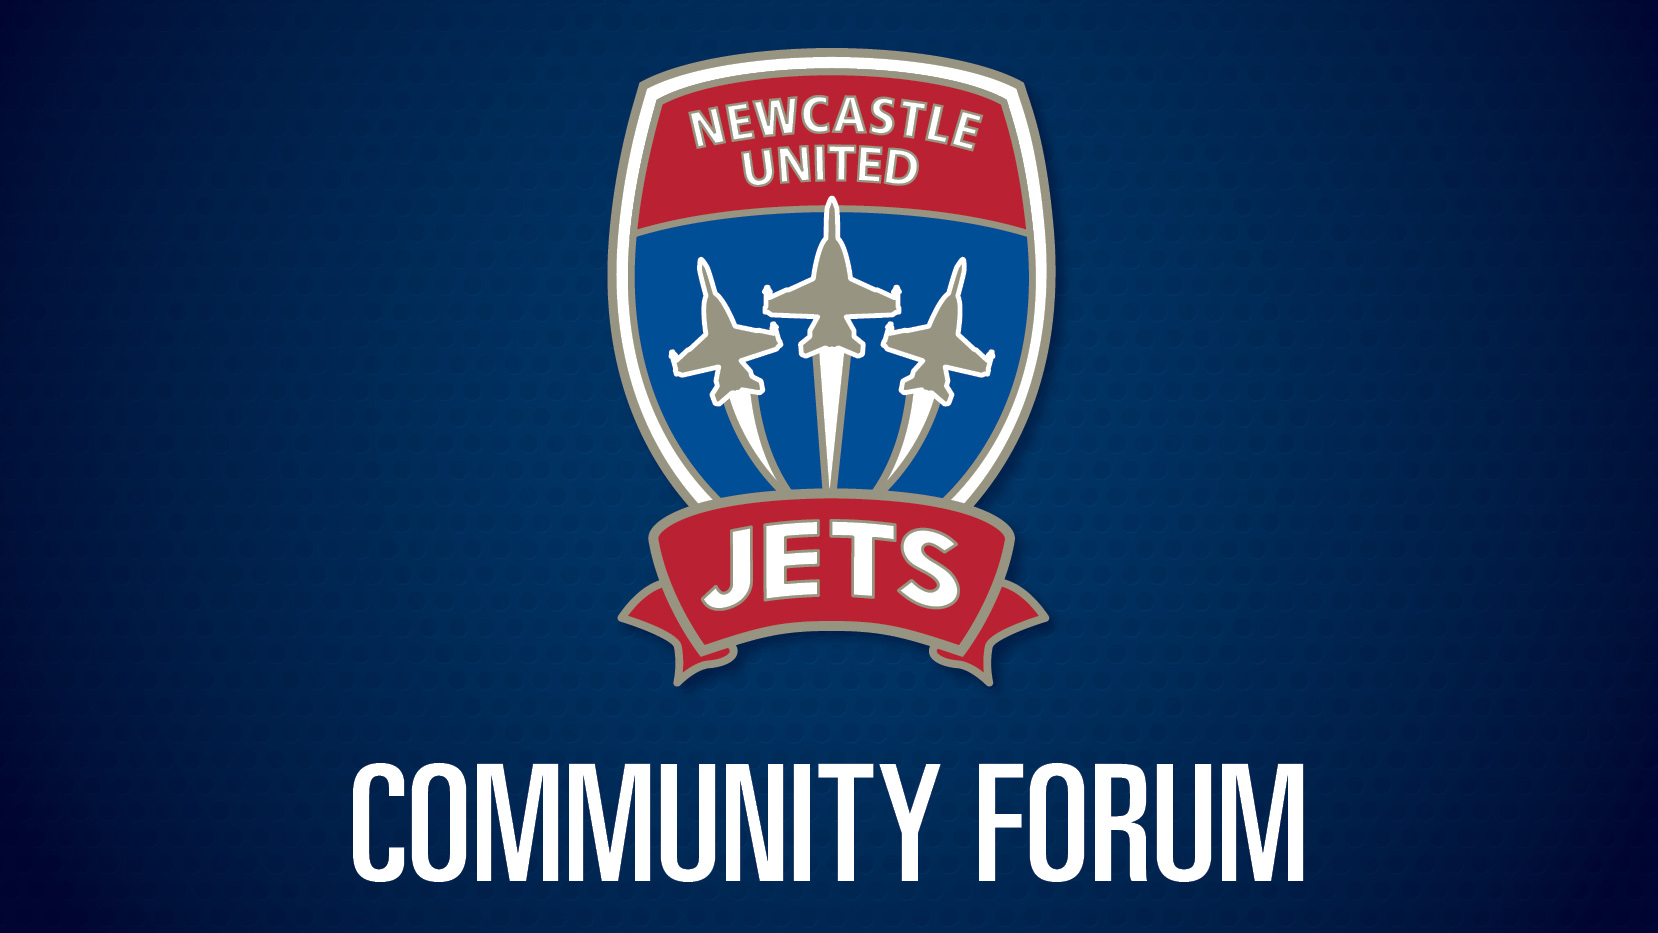 Newcastle Jets: Newcastle Jets Forum To Seek Community Input